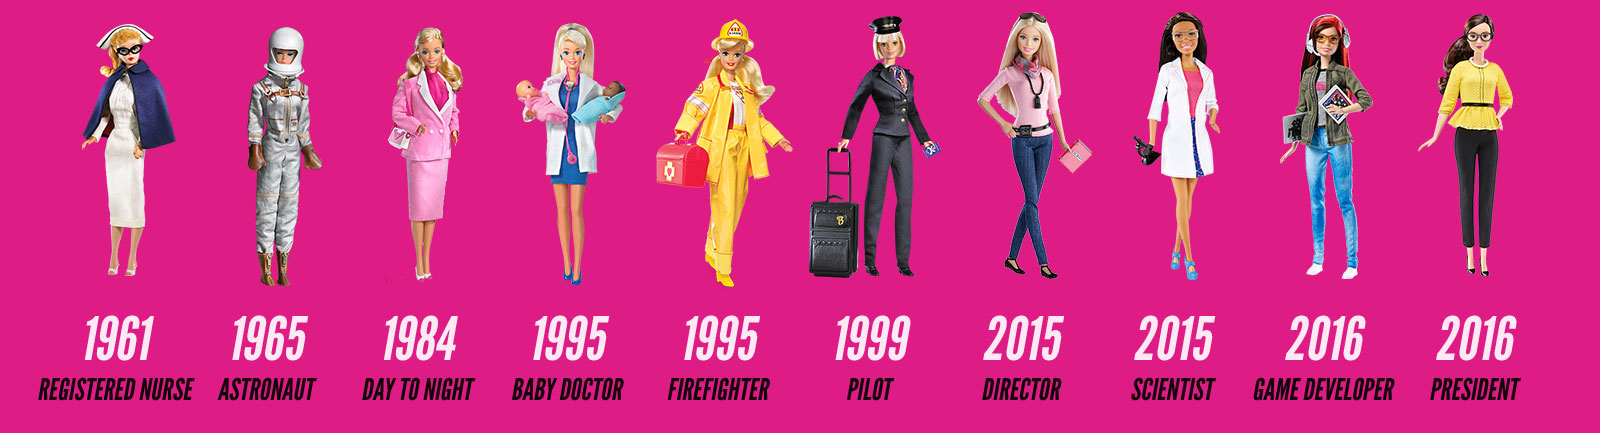 http://lesjouetsmattel.fr/media/uploads/2017/11/23/barbie-careers.jpg